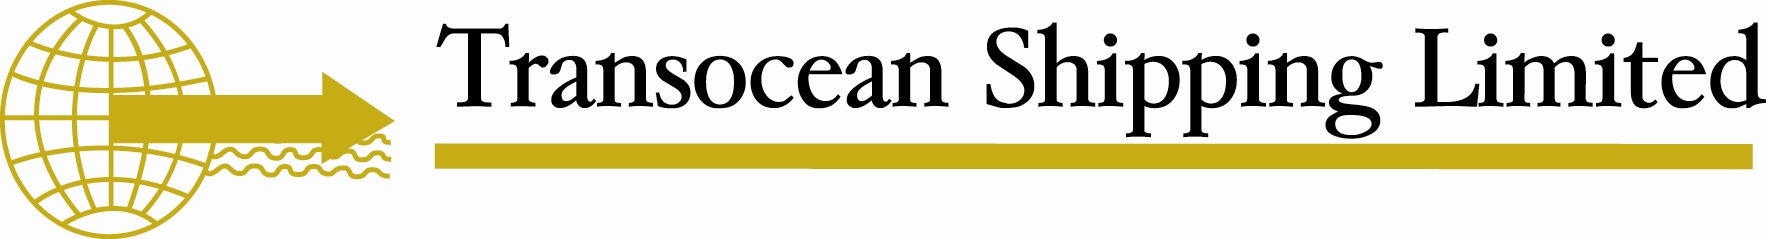 Transocean Shipping Limited